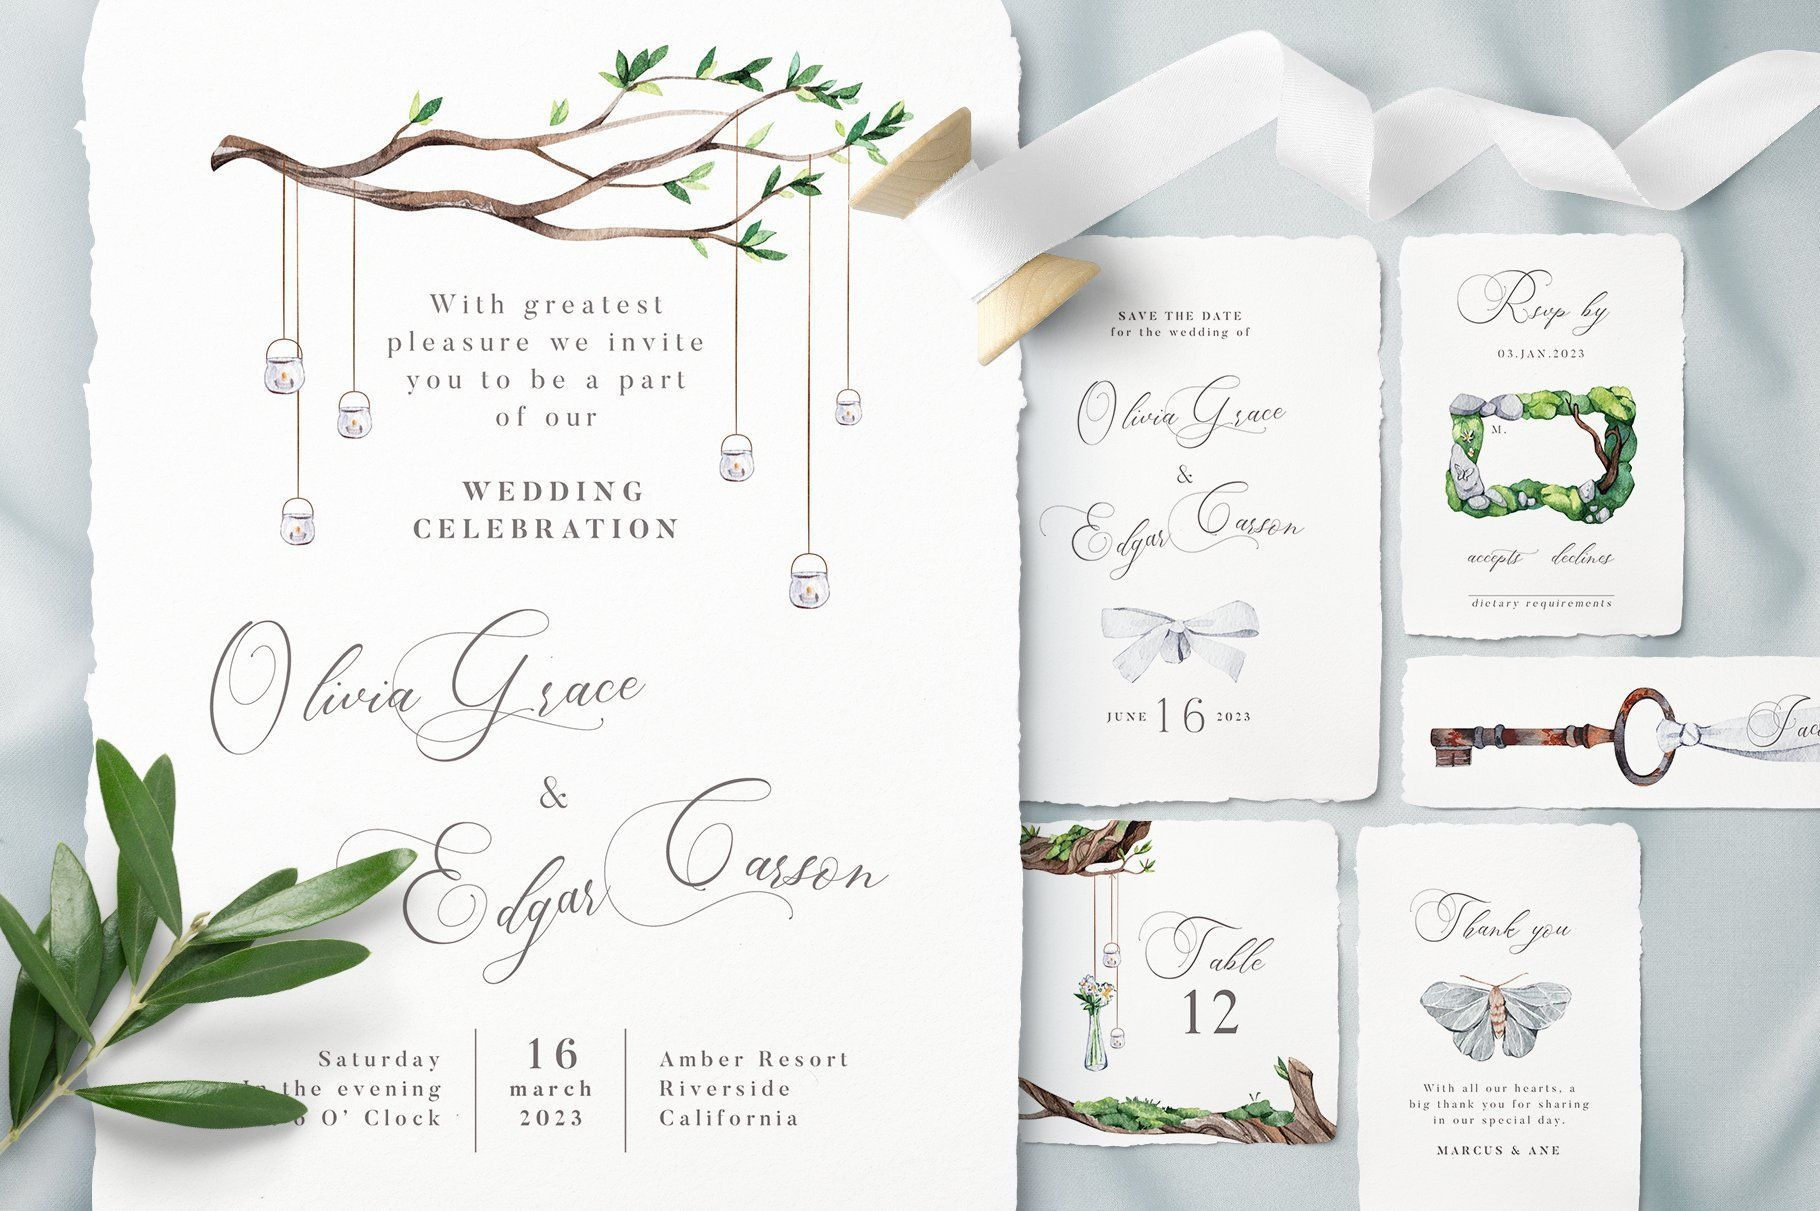 White Forest Wedding Invitations In 2020 Forest Wedding Invitations Wedding Invitations Menu Card Template